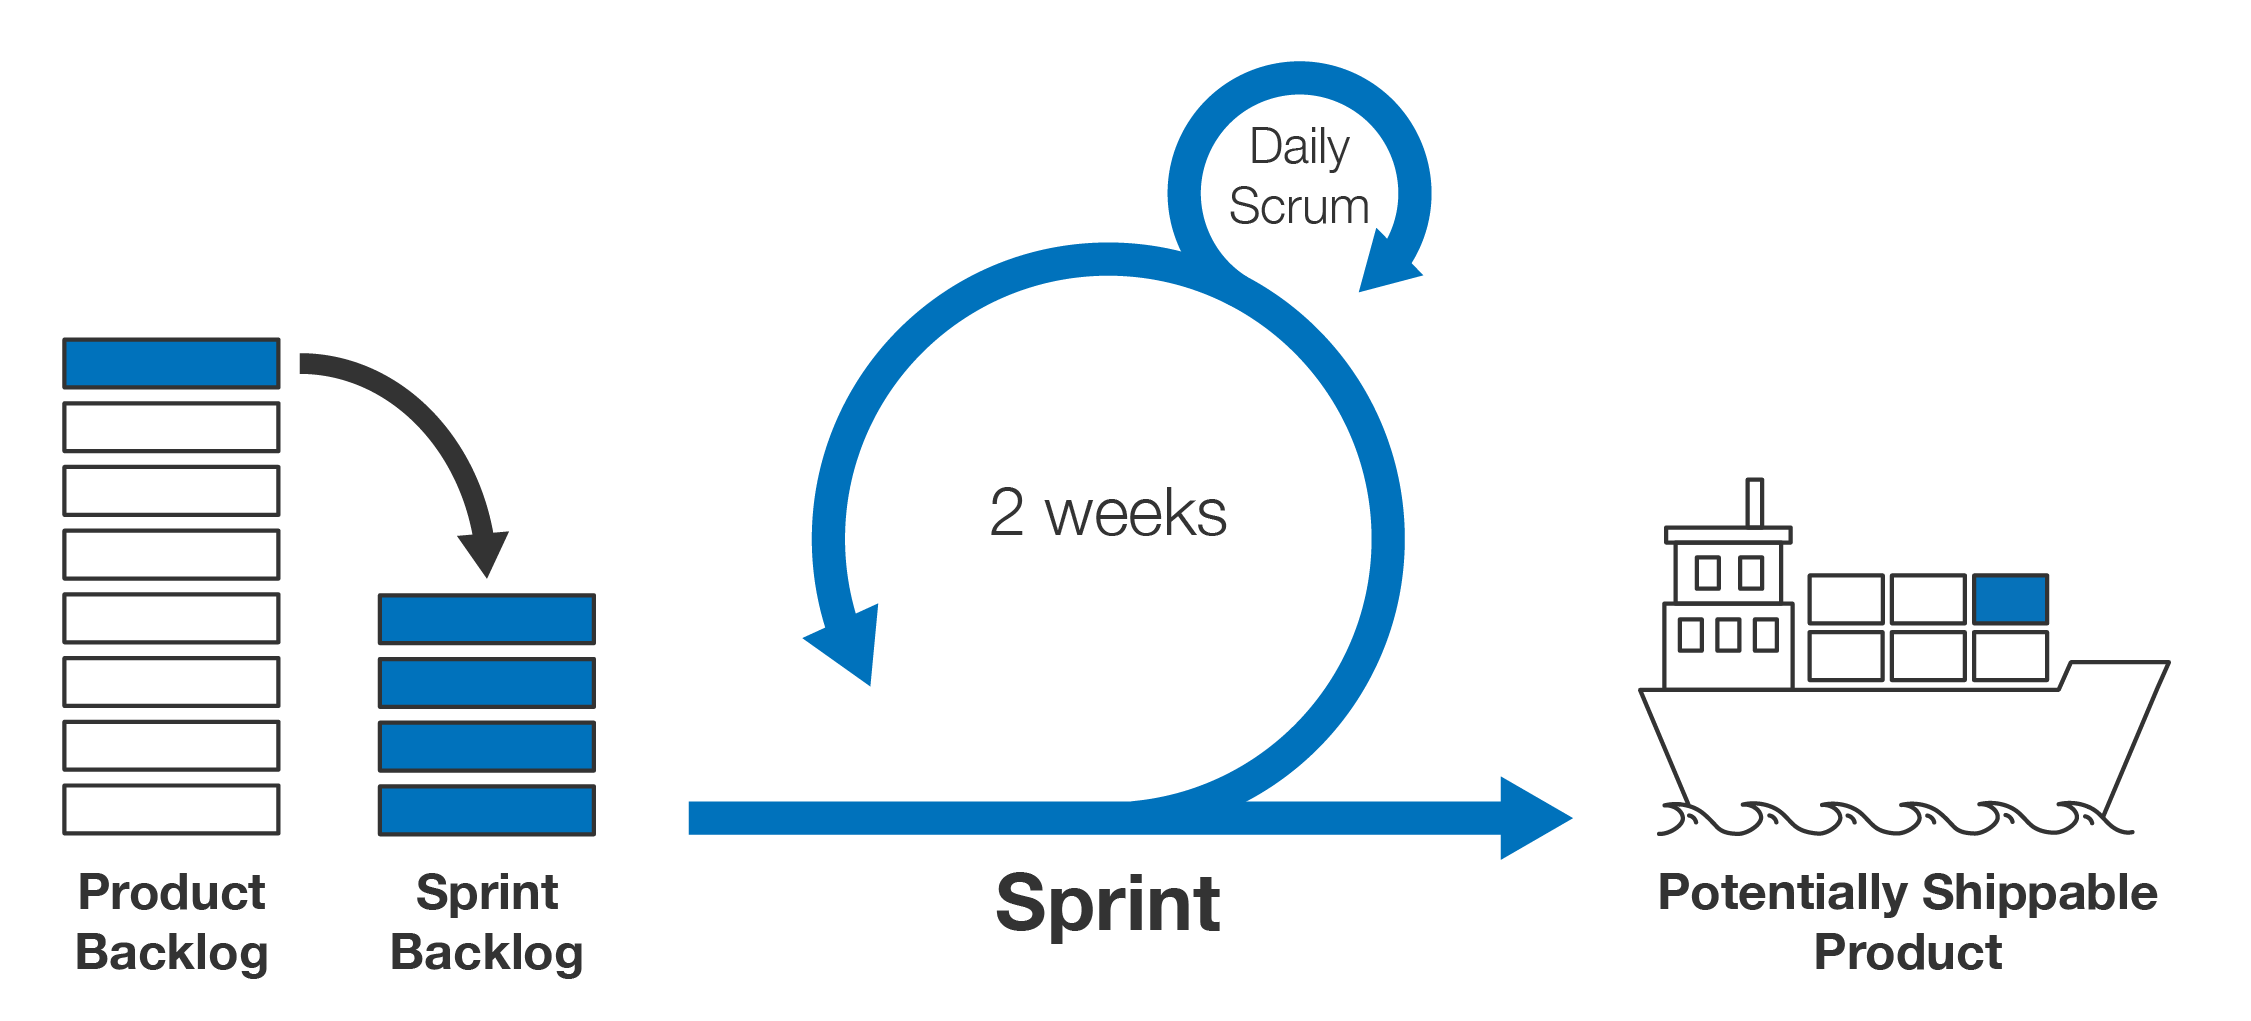 Agile development process with two week sprints and daily scrums